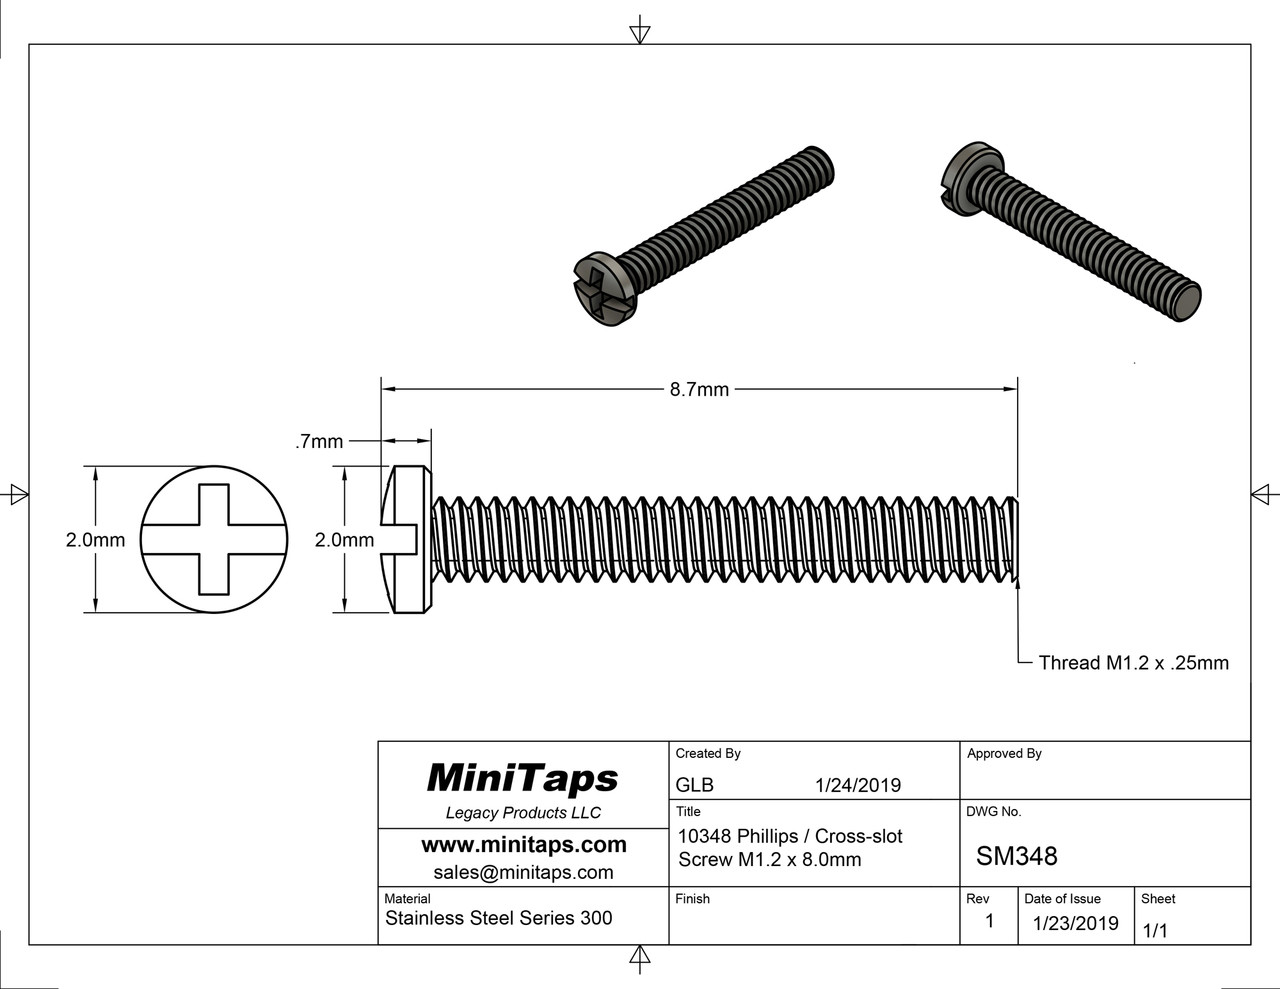 Machine Screw Pan Head with Philips X-Slot Drive   Thread M1.2 (1.20UNM), Pitch .25mm, Threaded Length 8.0mm, Overall length 8.7mm, Head 2.0mm   Stainless Steel   Price is for 100 count package with bulk pricing available.   Please contact sales@minitaps.com for any additional questions or information.